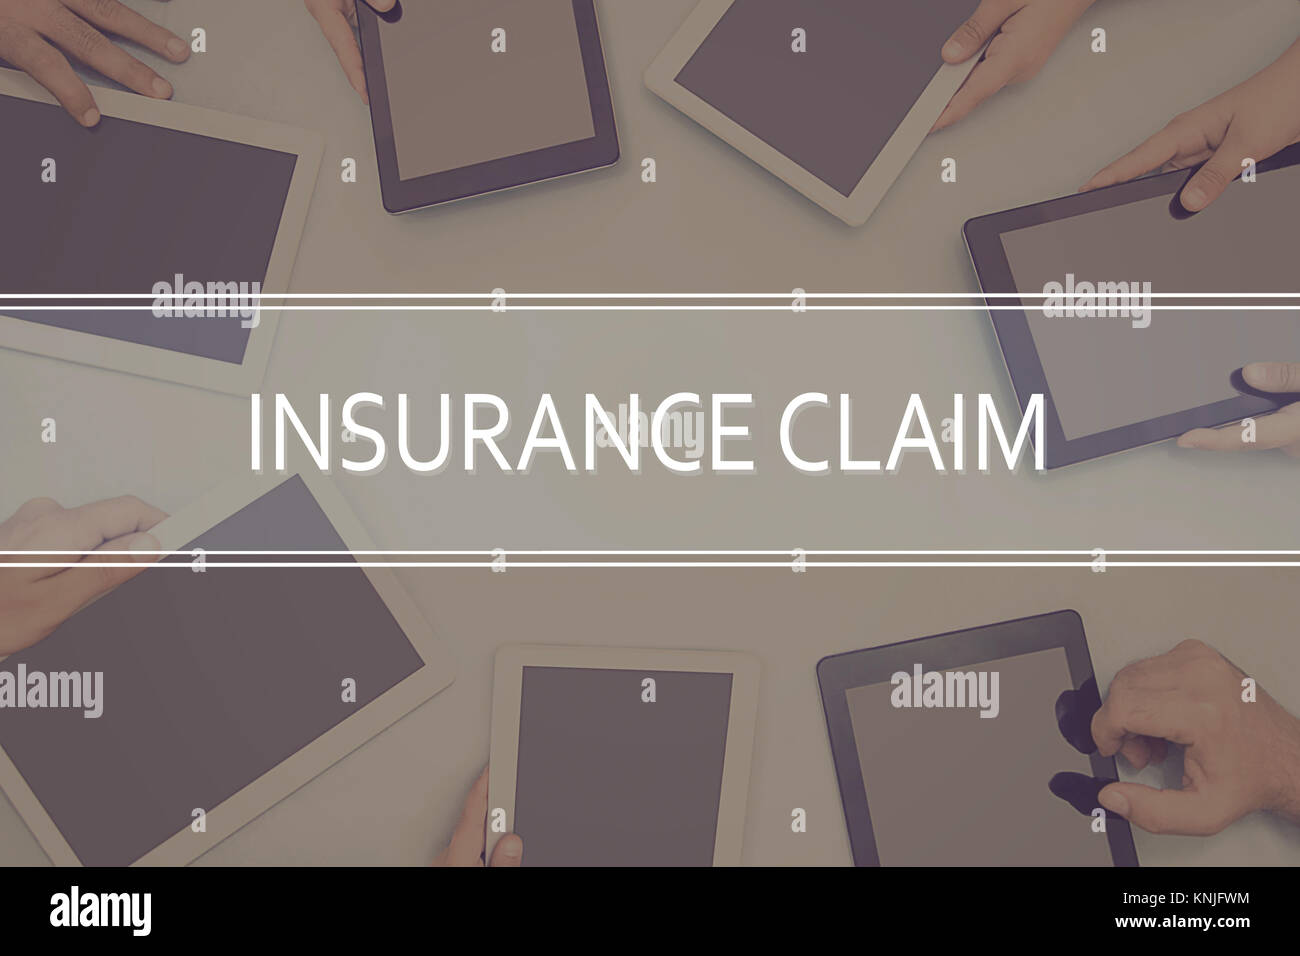 INSURANCE CLAIM CONCEPT Business Concept. - Stock Image